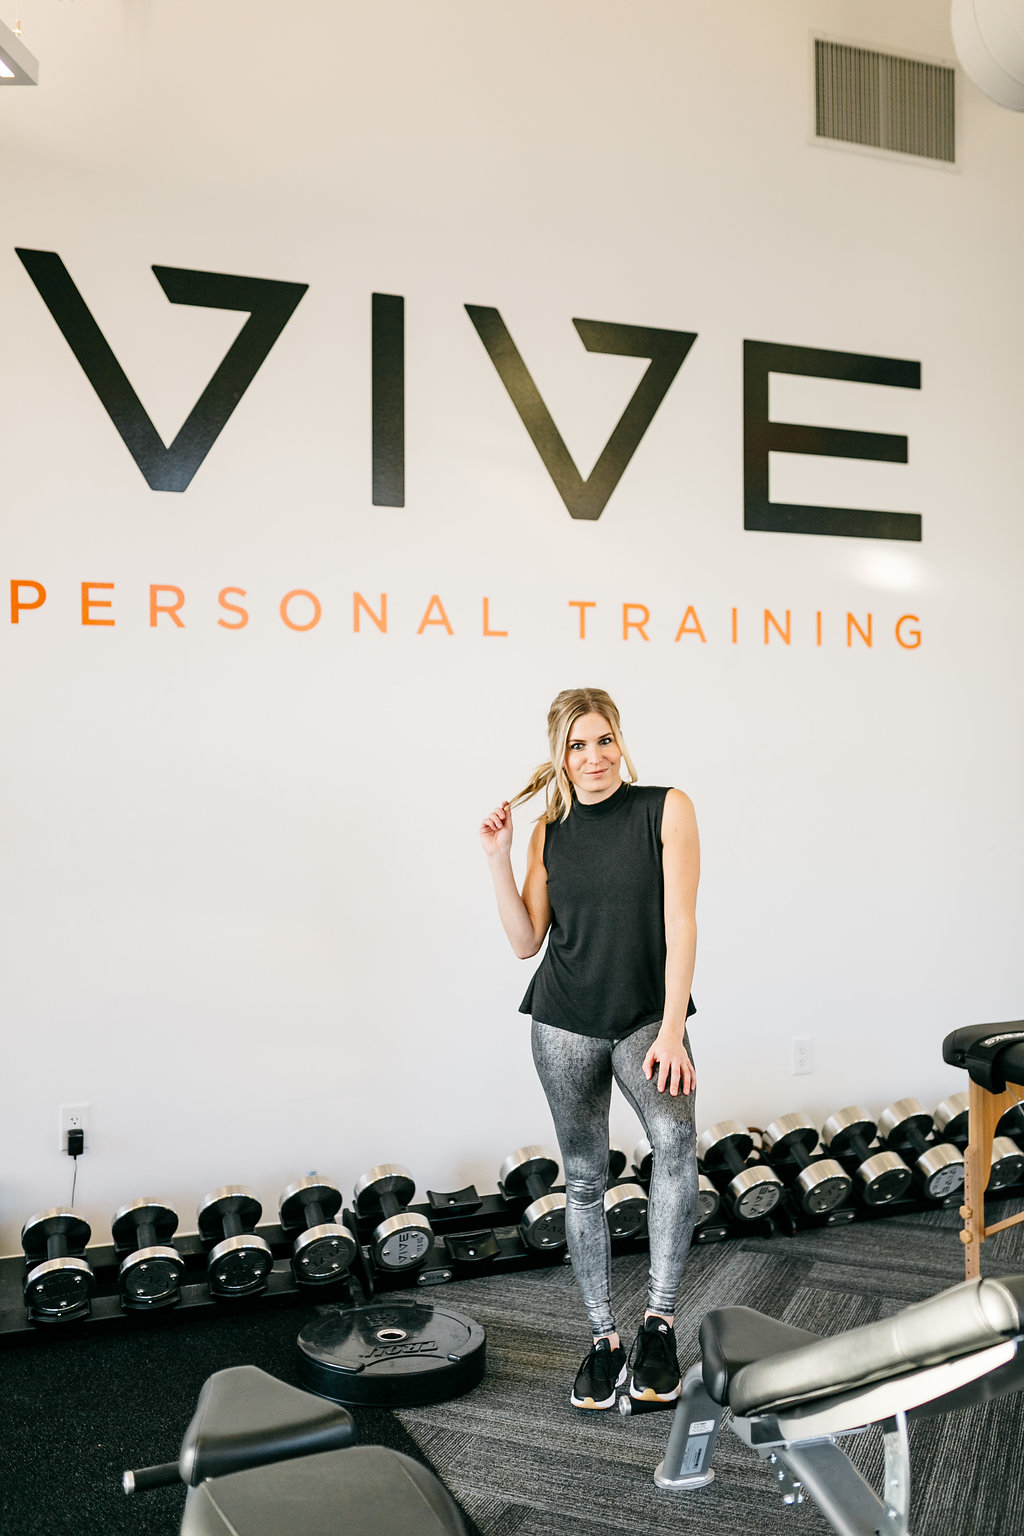 Vive Personal Training - Dallas workout studio